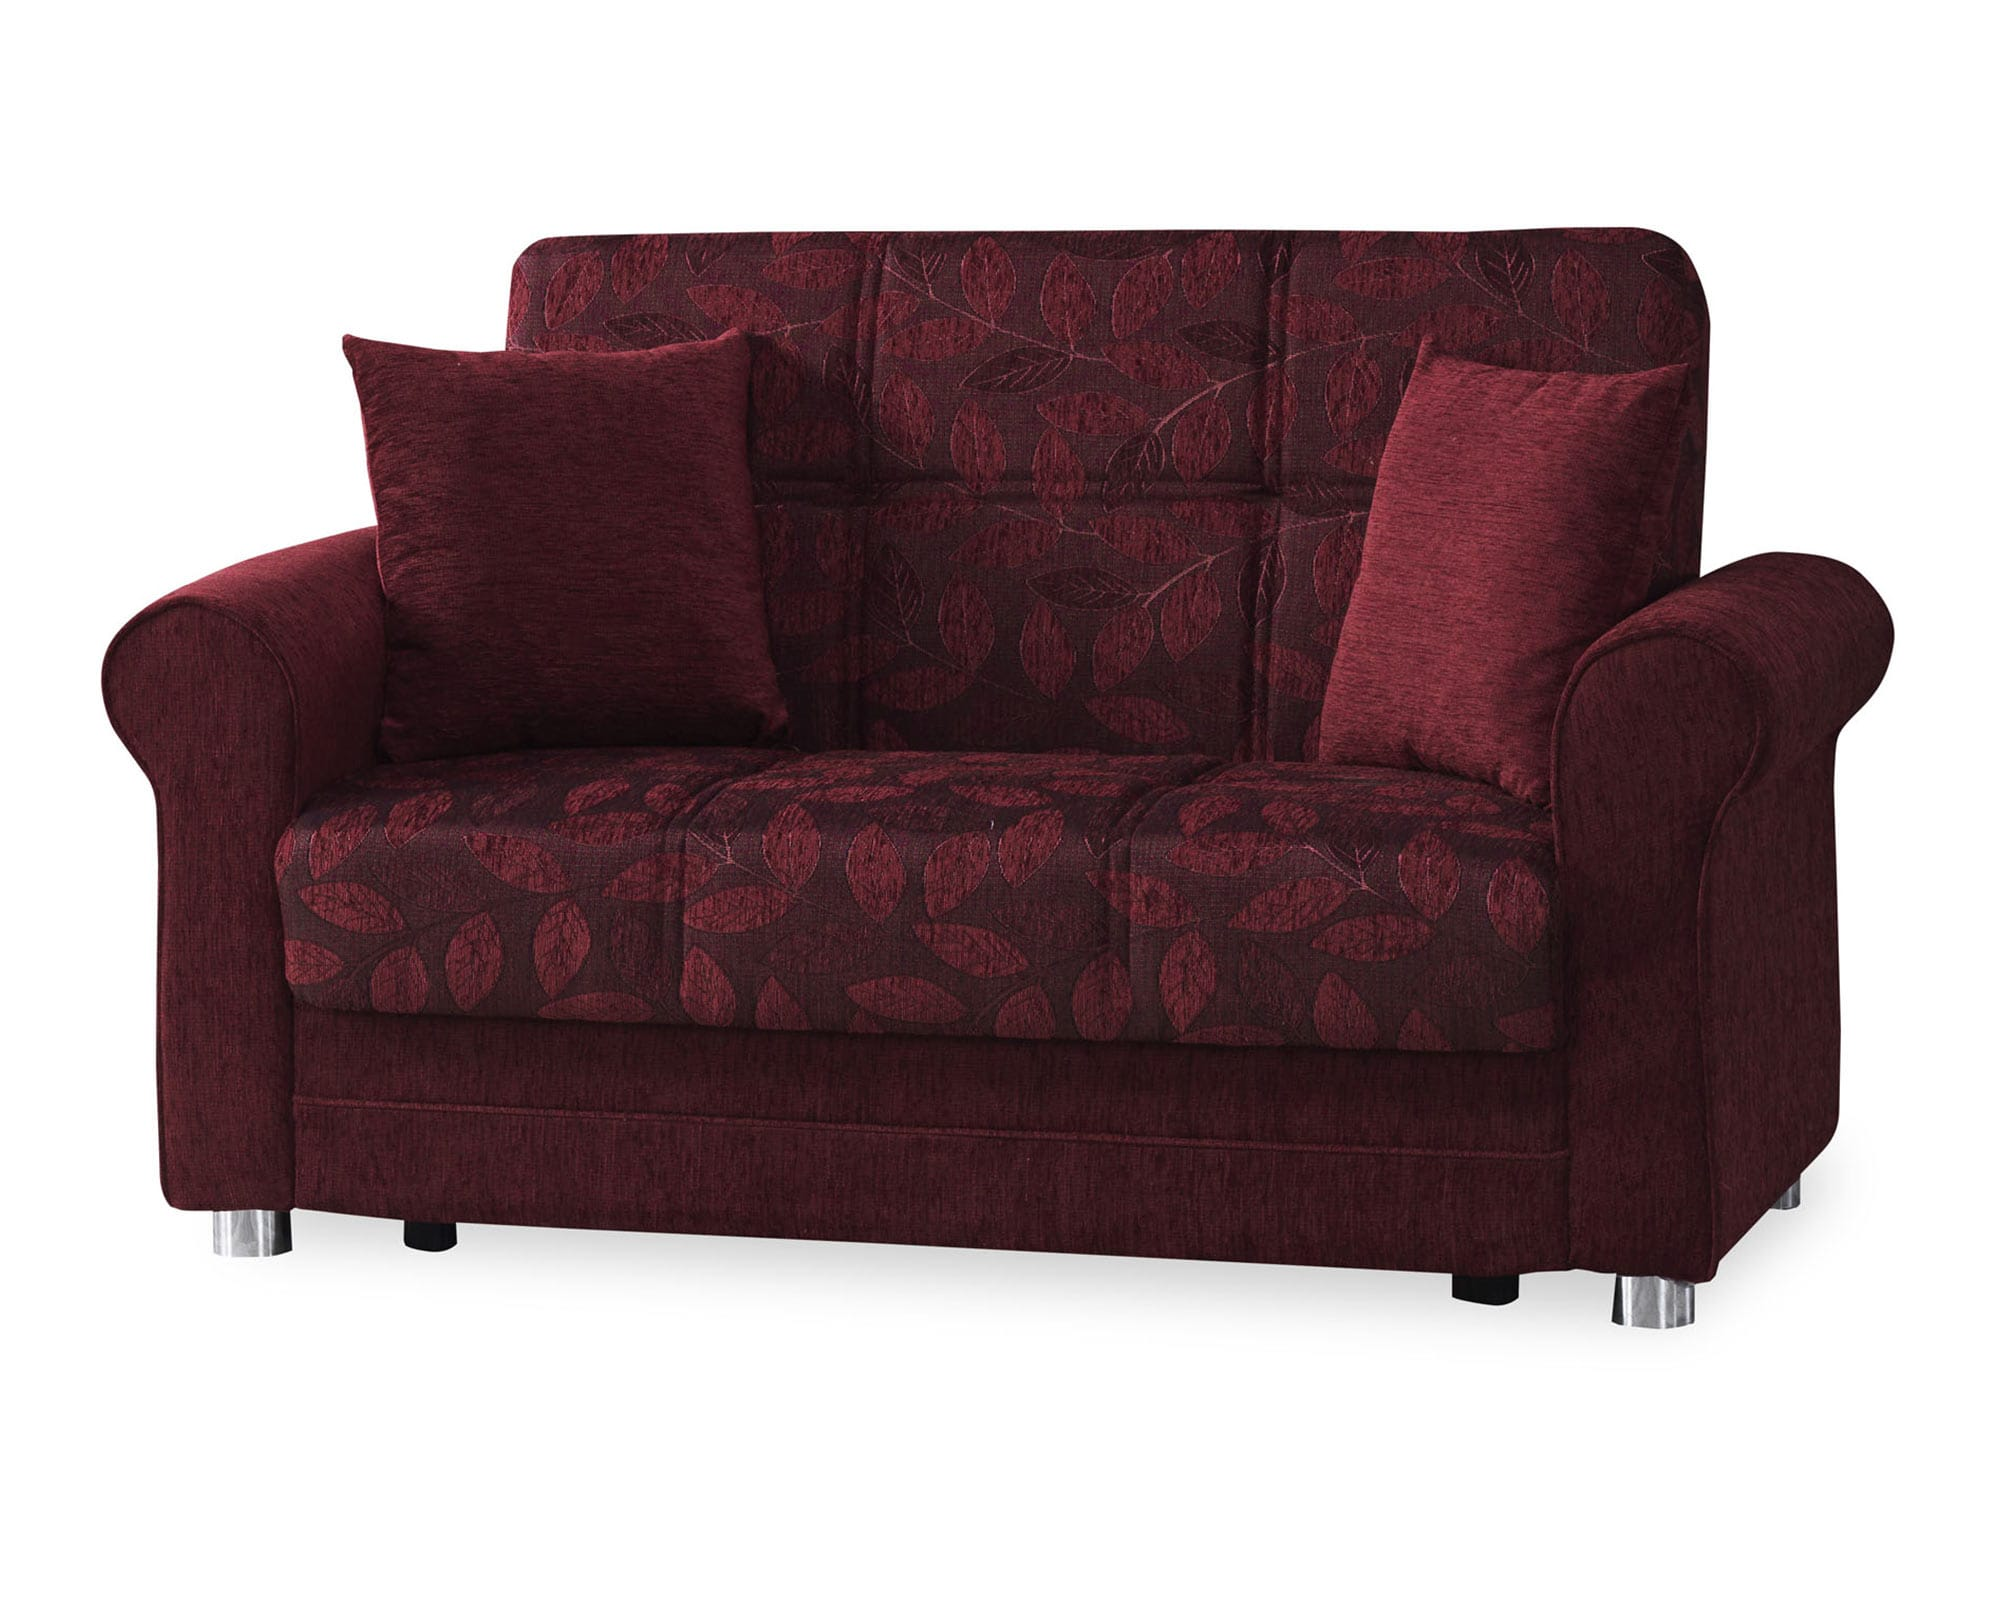 Rio Burgundy Convertible Loveseat by Casamode